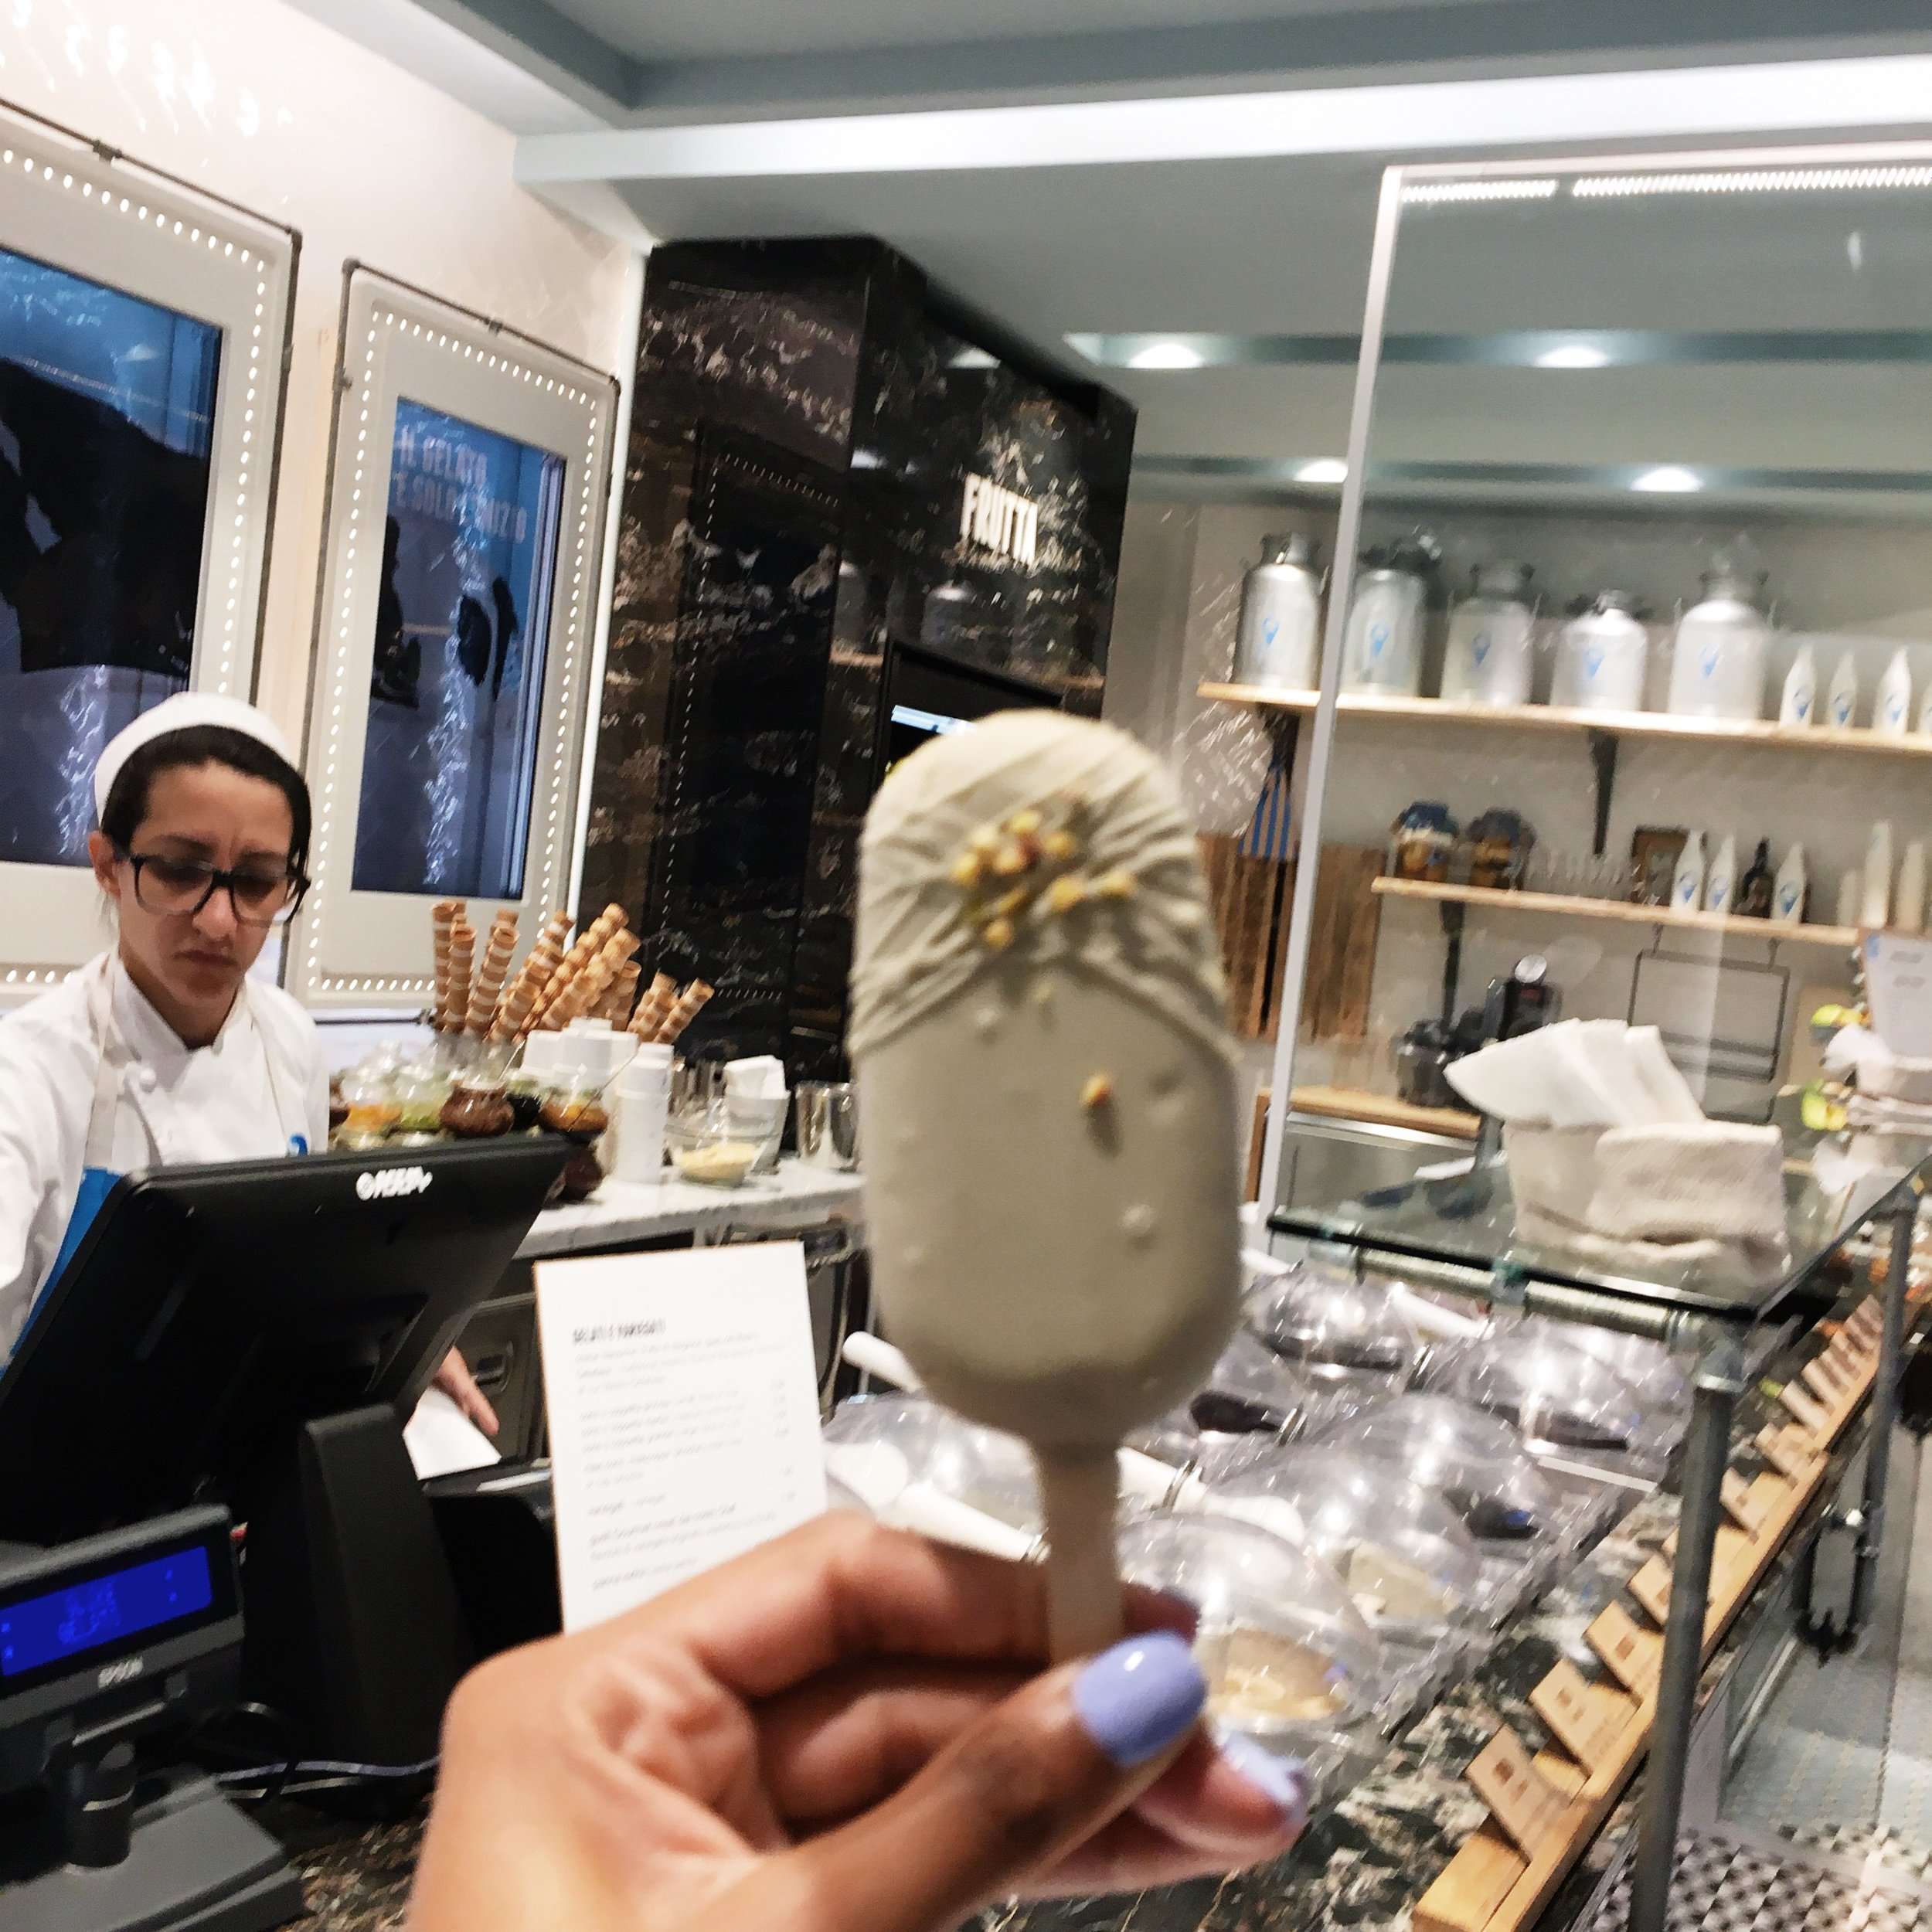 I think I had a Pistachio Gelato Bar from G Like Gelato almost every night or at least twice a day. So bad but so good! If you are headed to Rome I recommend you try one. They also come in different sizes and flavors!  Address: Piazza Cola di Rienzo, 29, 00193 Roma, Italy